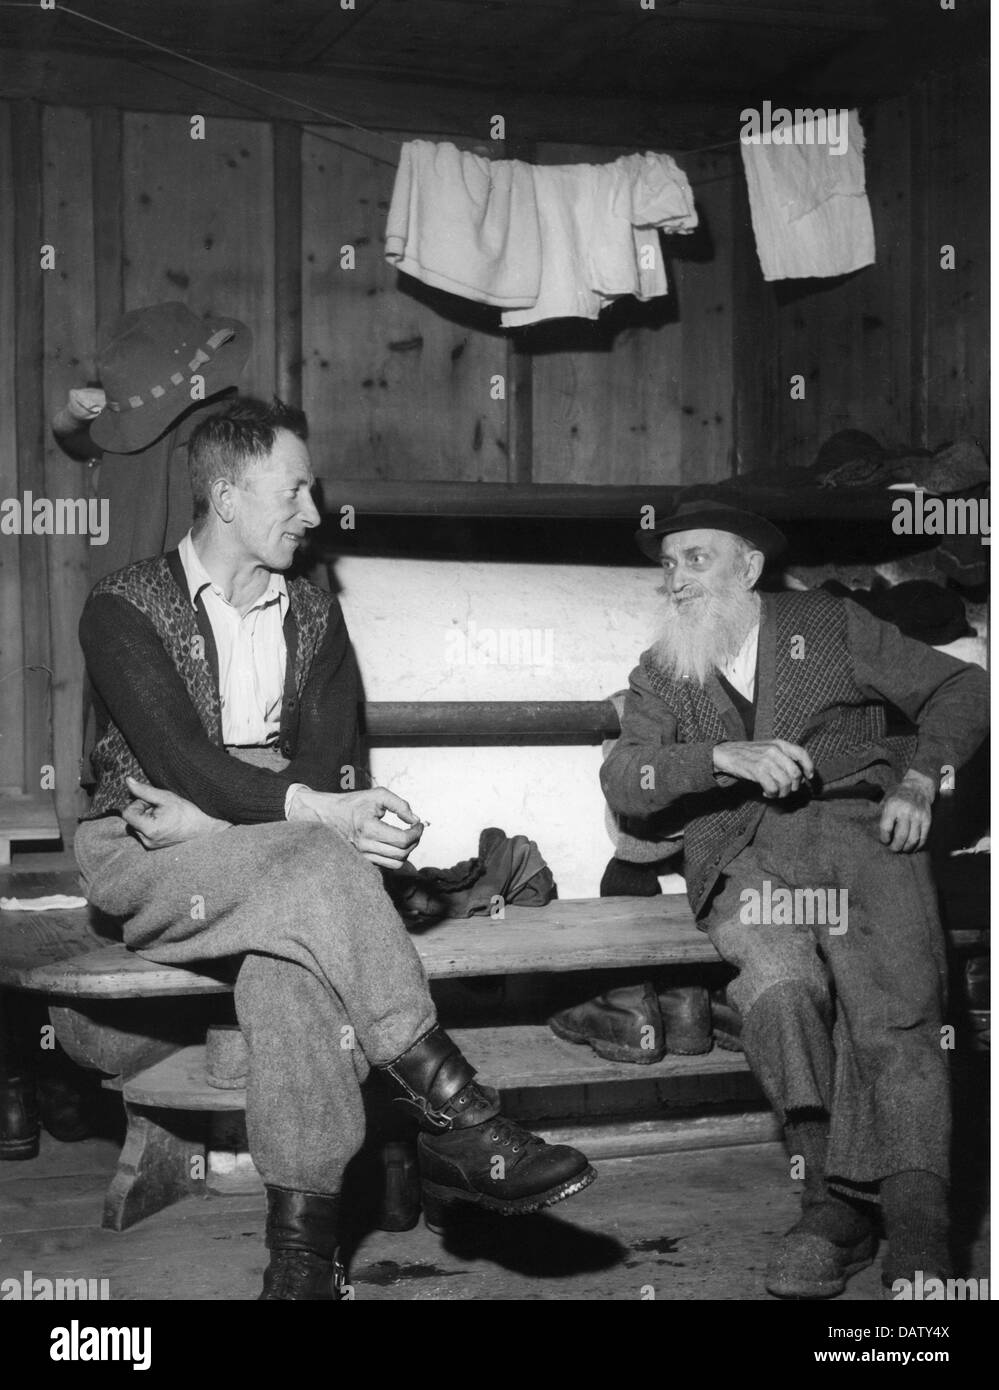 Agriculture Mountain Farmer Two Men Having Conversation In The Stock Photo Royalty Free Image